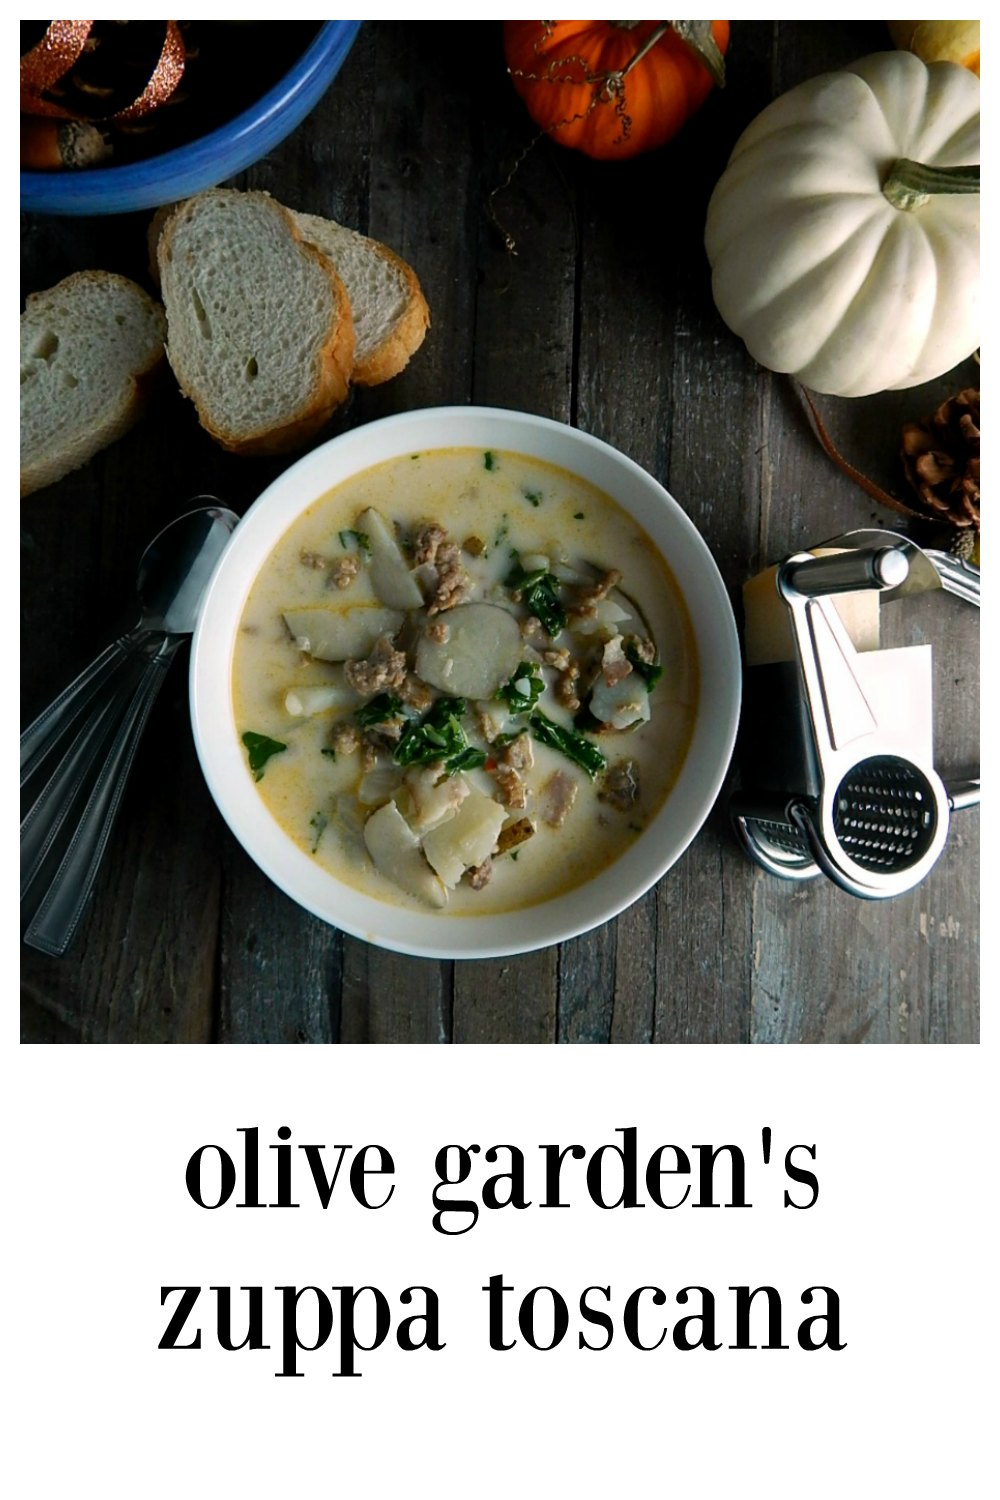 Olive Garden's Zuppa Toscana Copycat is comfort food; so flavorful. This is the OG original recipe from their website. Quick and easy. #ZuppaToscana #OliveGardenZuppaToscana #OliveGardenZuppaToscanaRecipe #TuscanSoup #Kale #OliveGardenCopycat #CopycatZuppaToscana